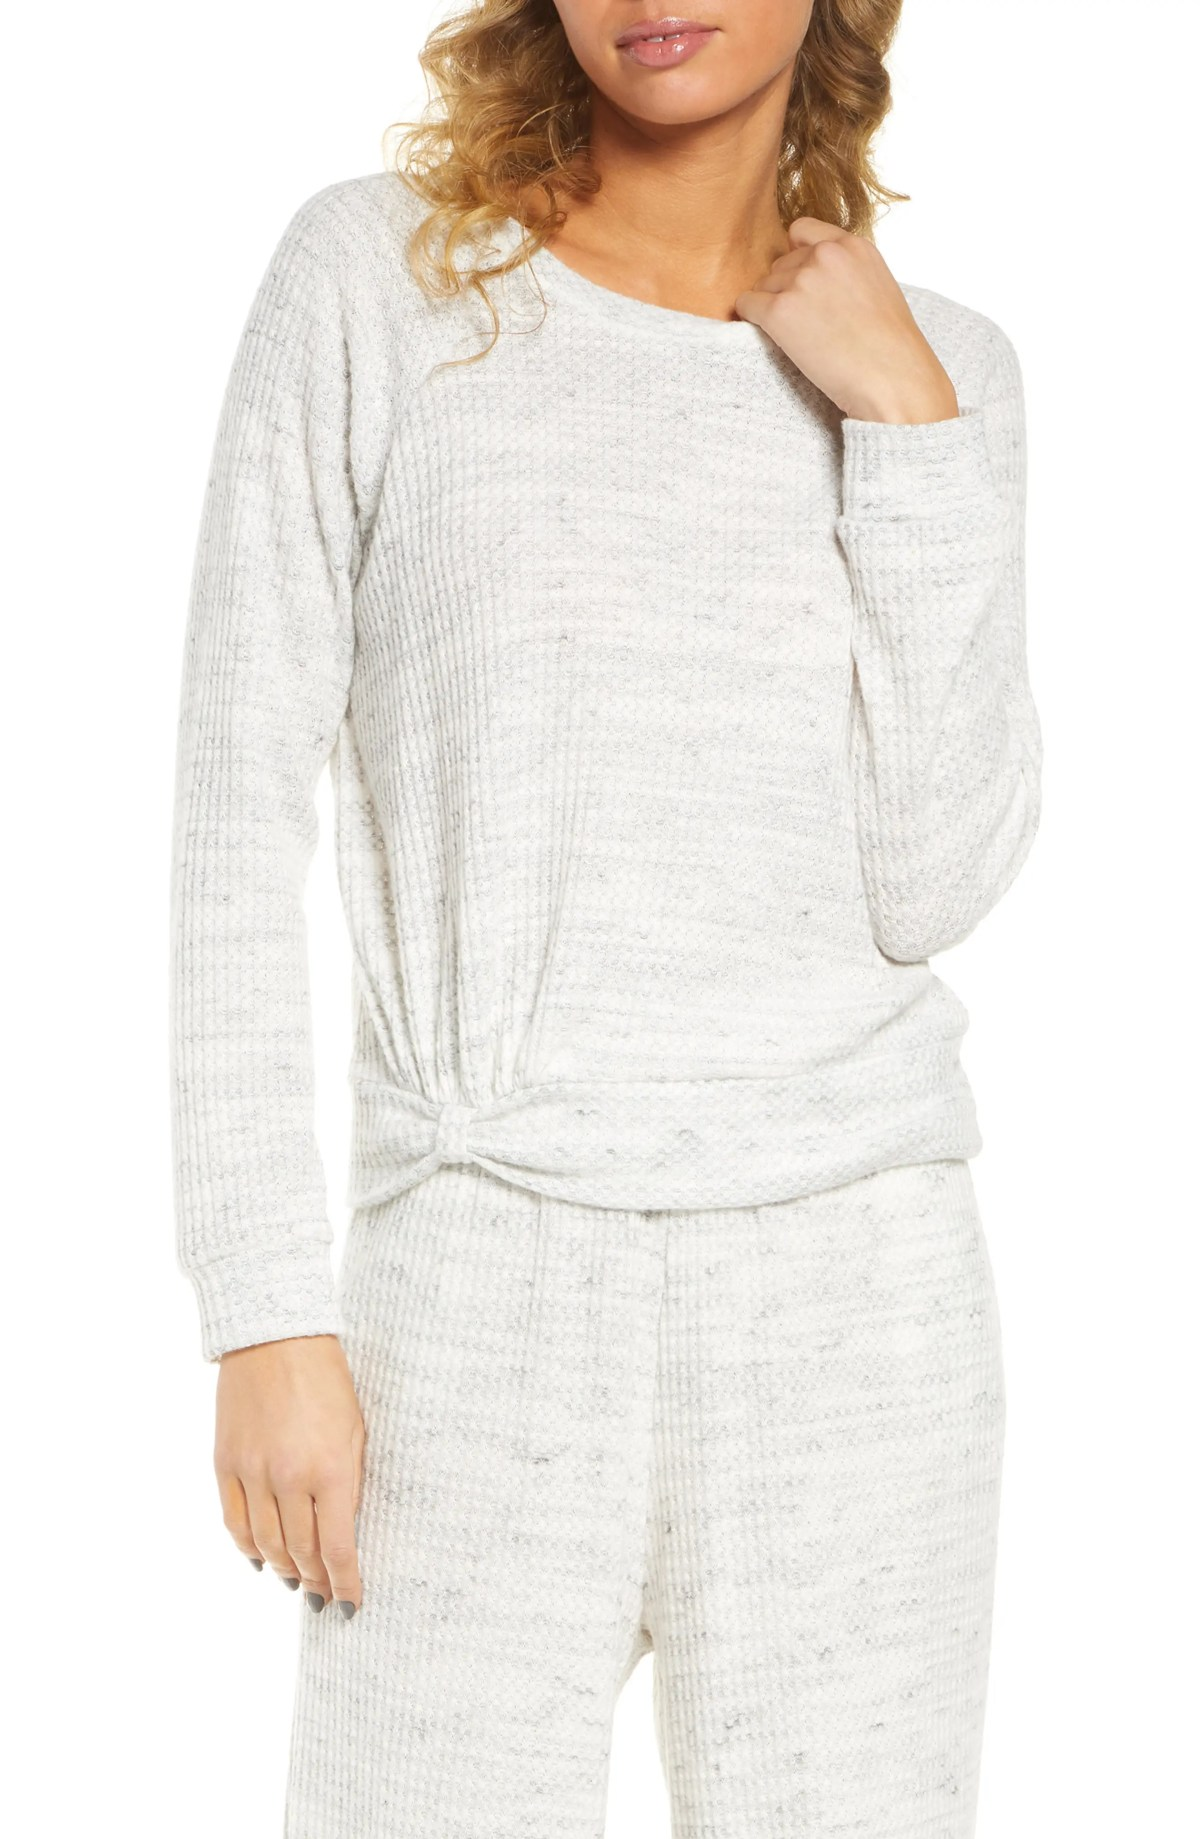 SOCIALITE Waffle Knit Pullover, Main, color, GREY